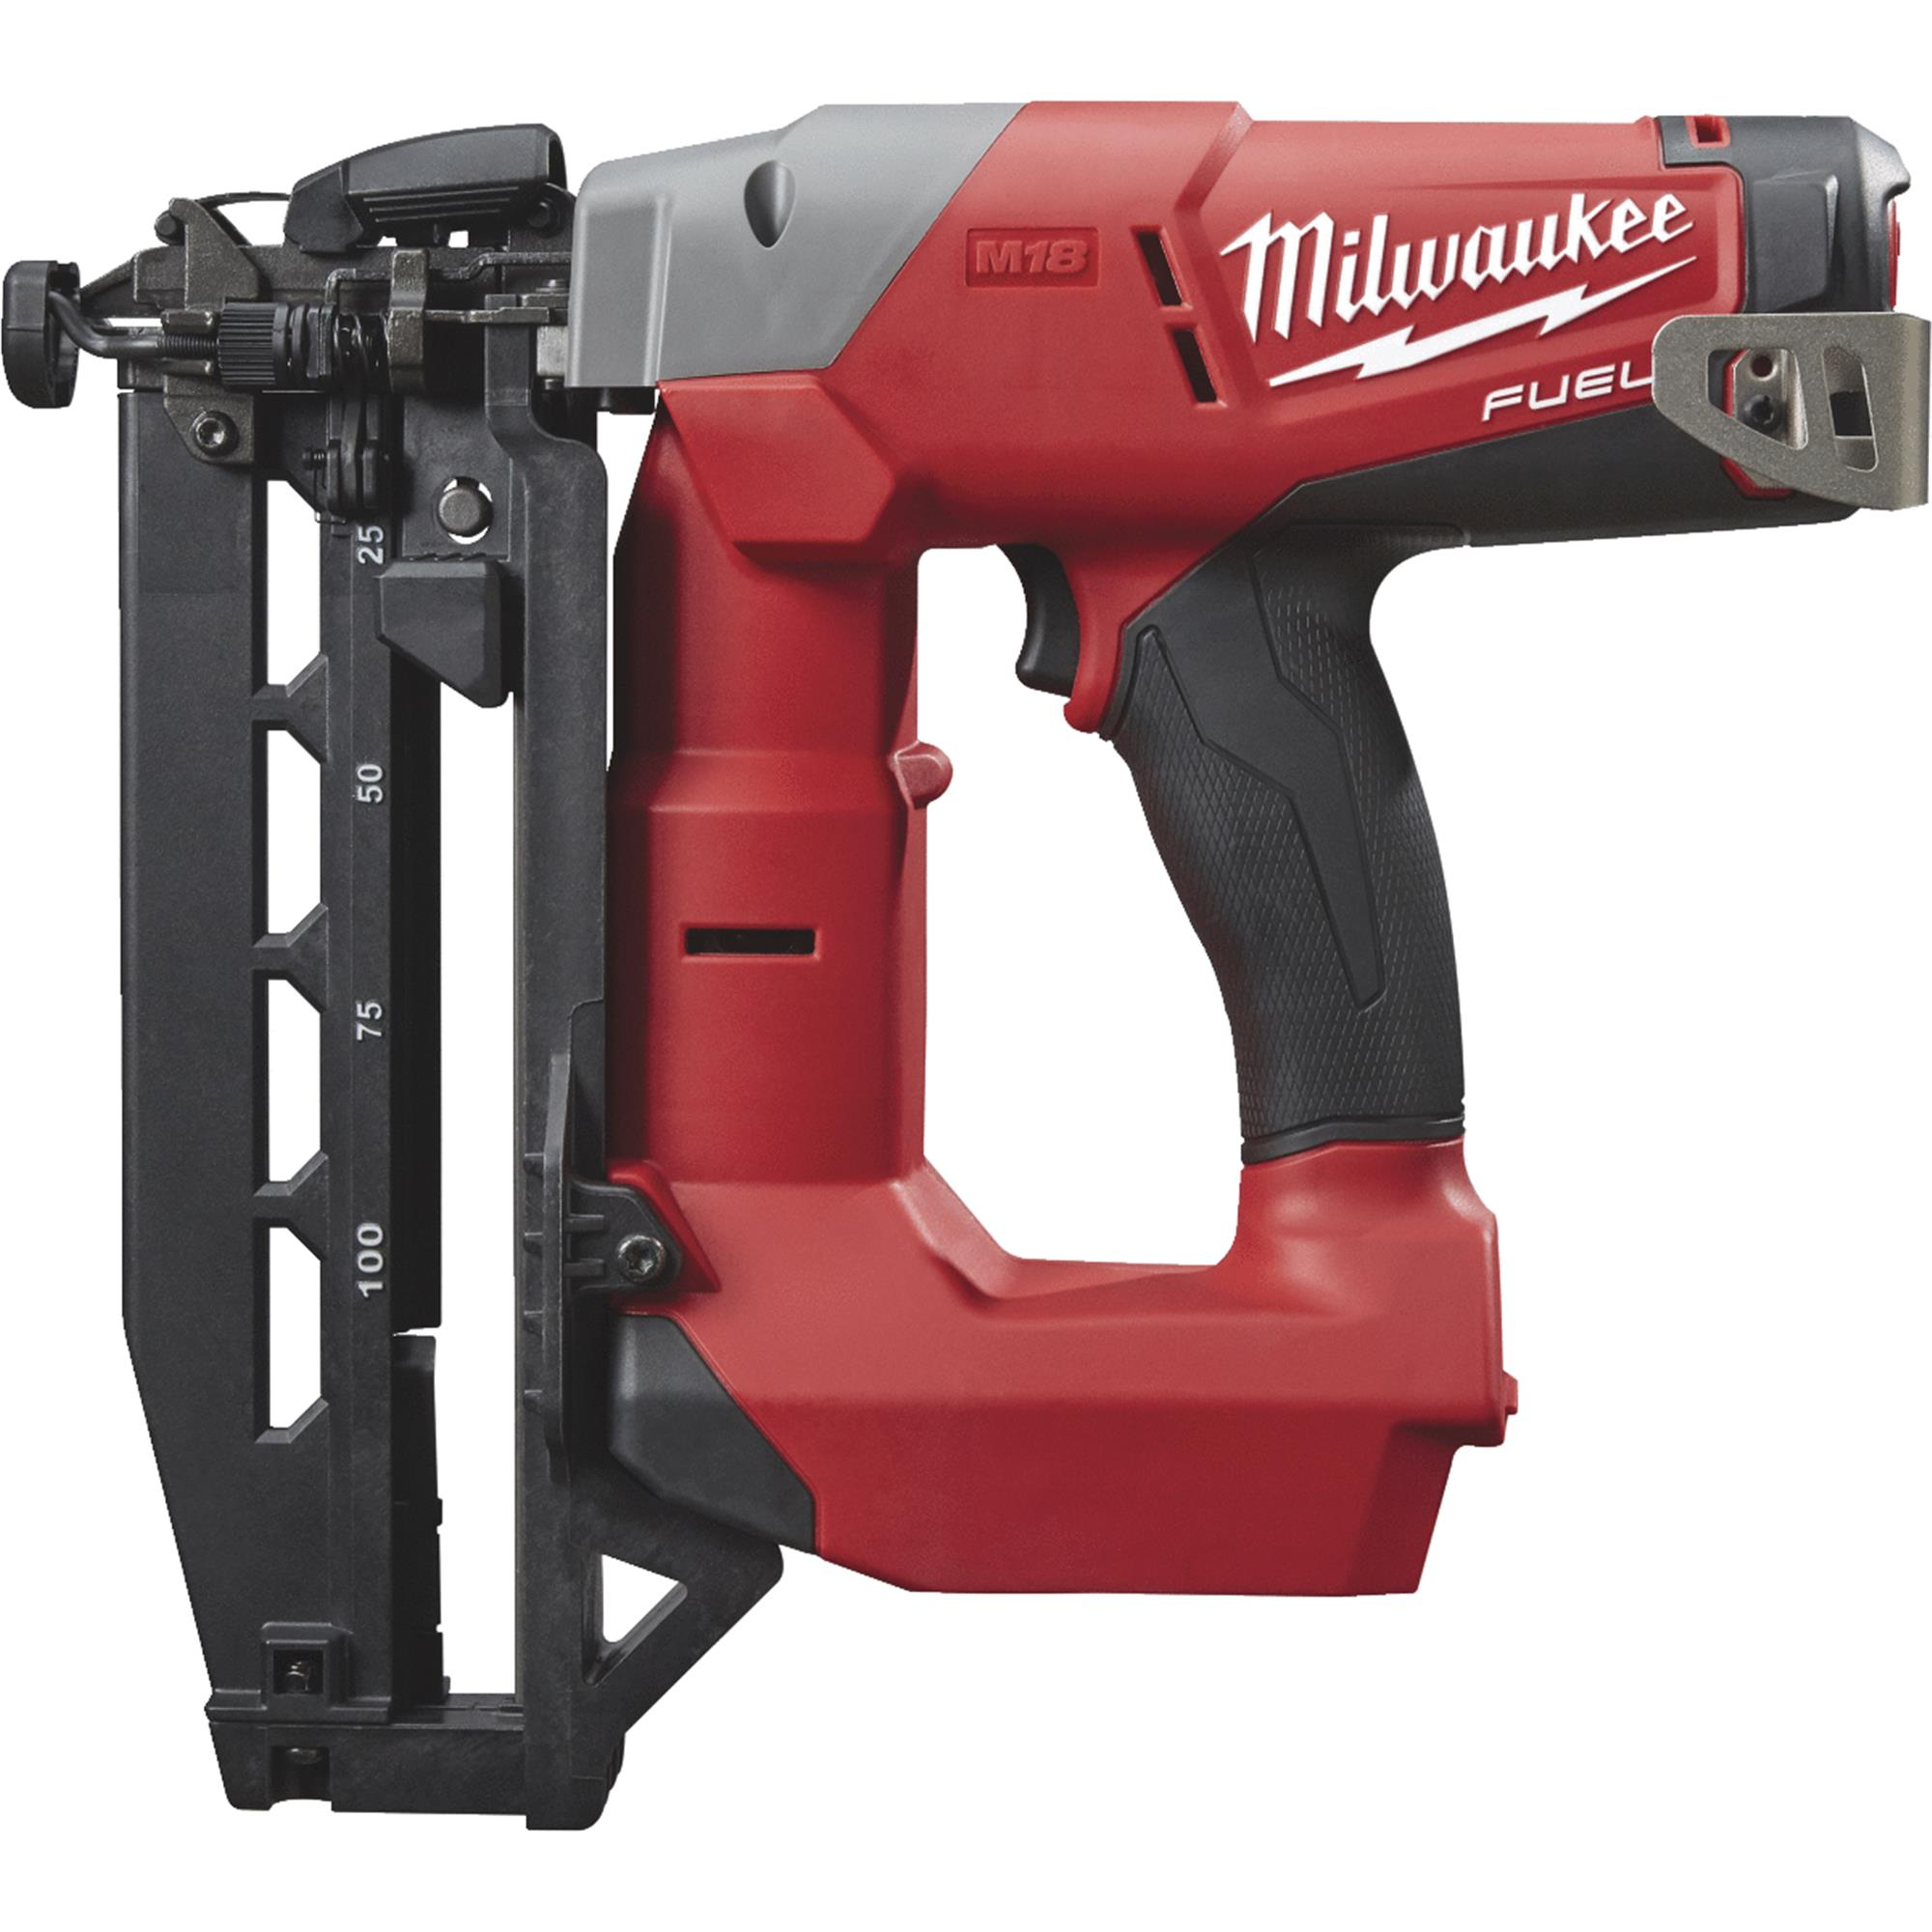 Milwaukee M18 FUEL Brushless Cordless Finish Nailer Bare Tool by Milwaukee Elec.Tool